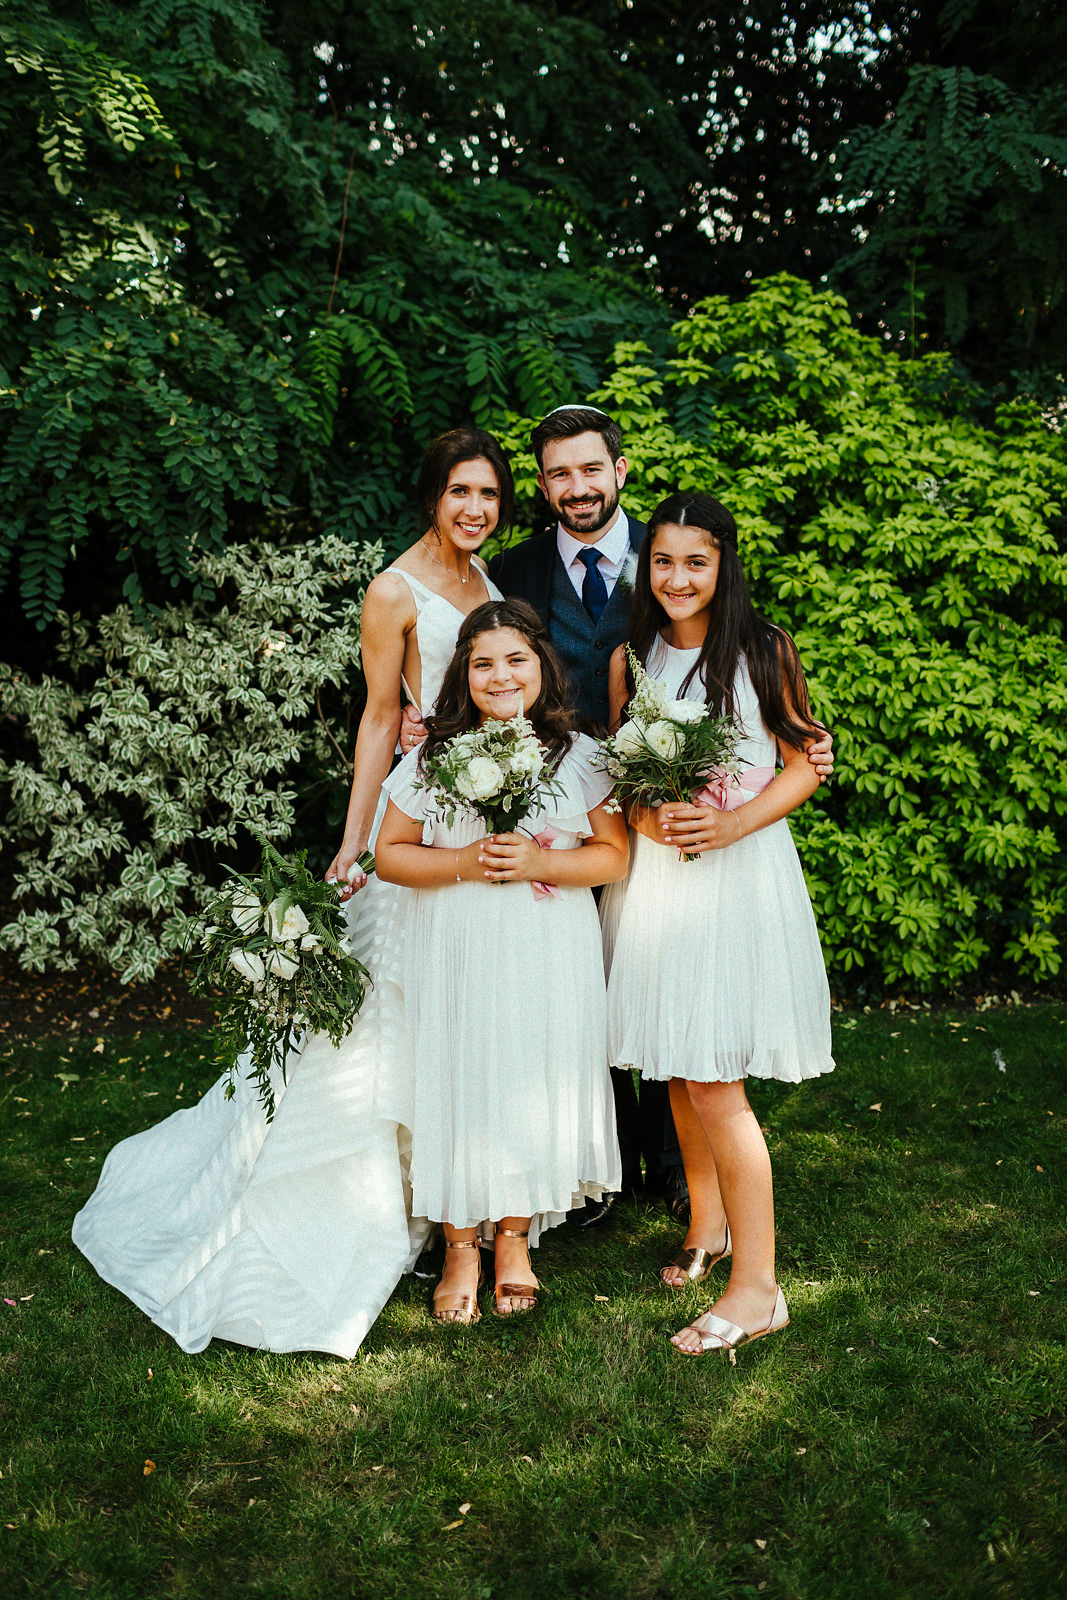 White flower girl dresses with bride and groom